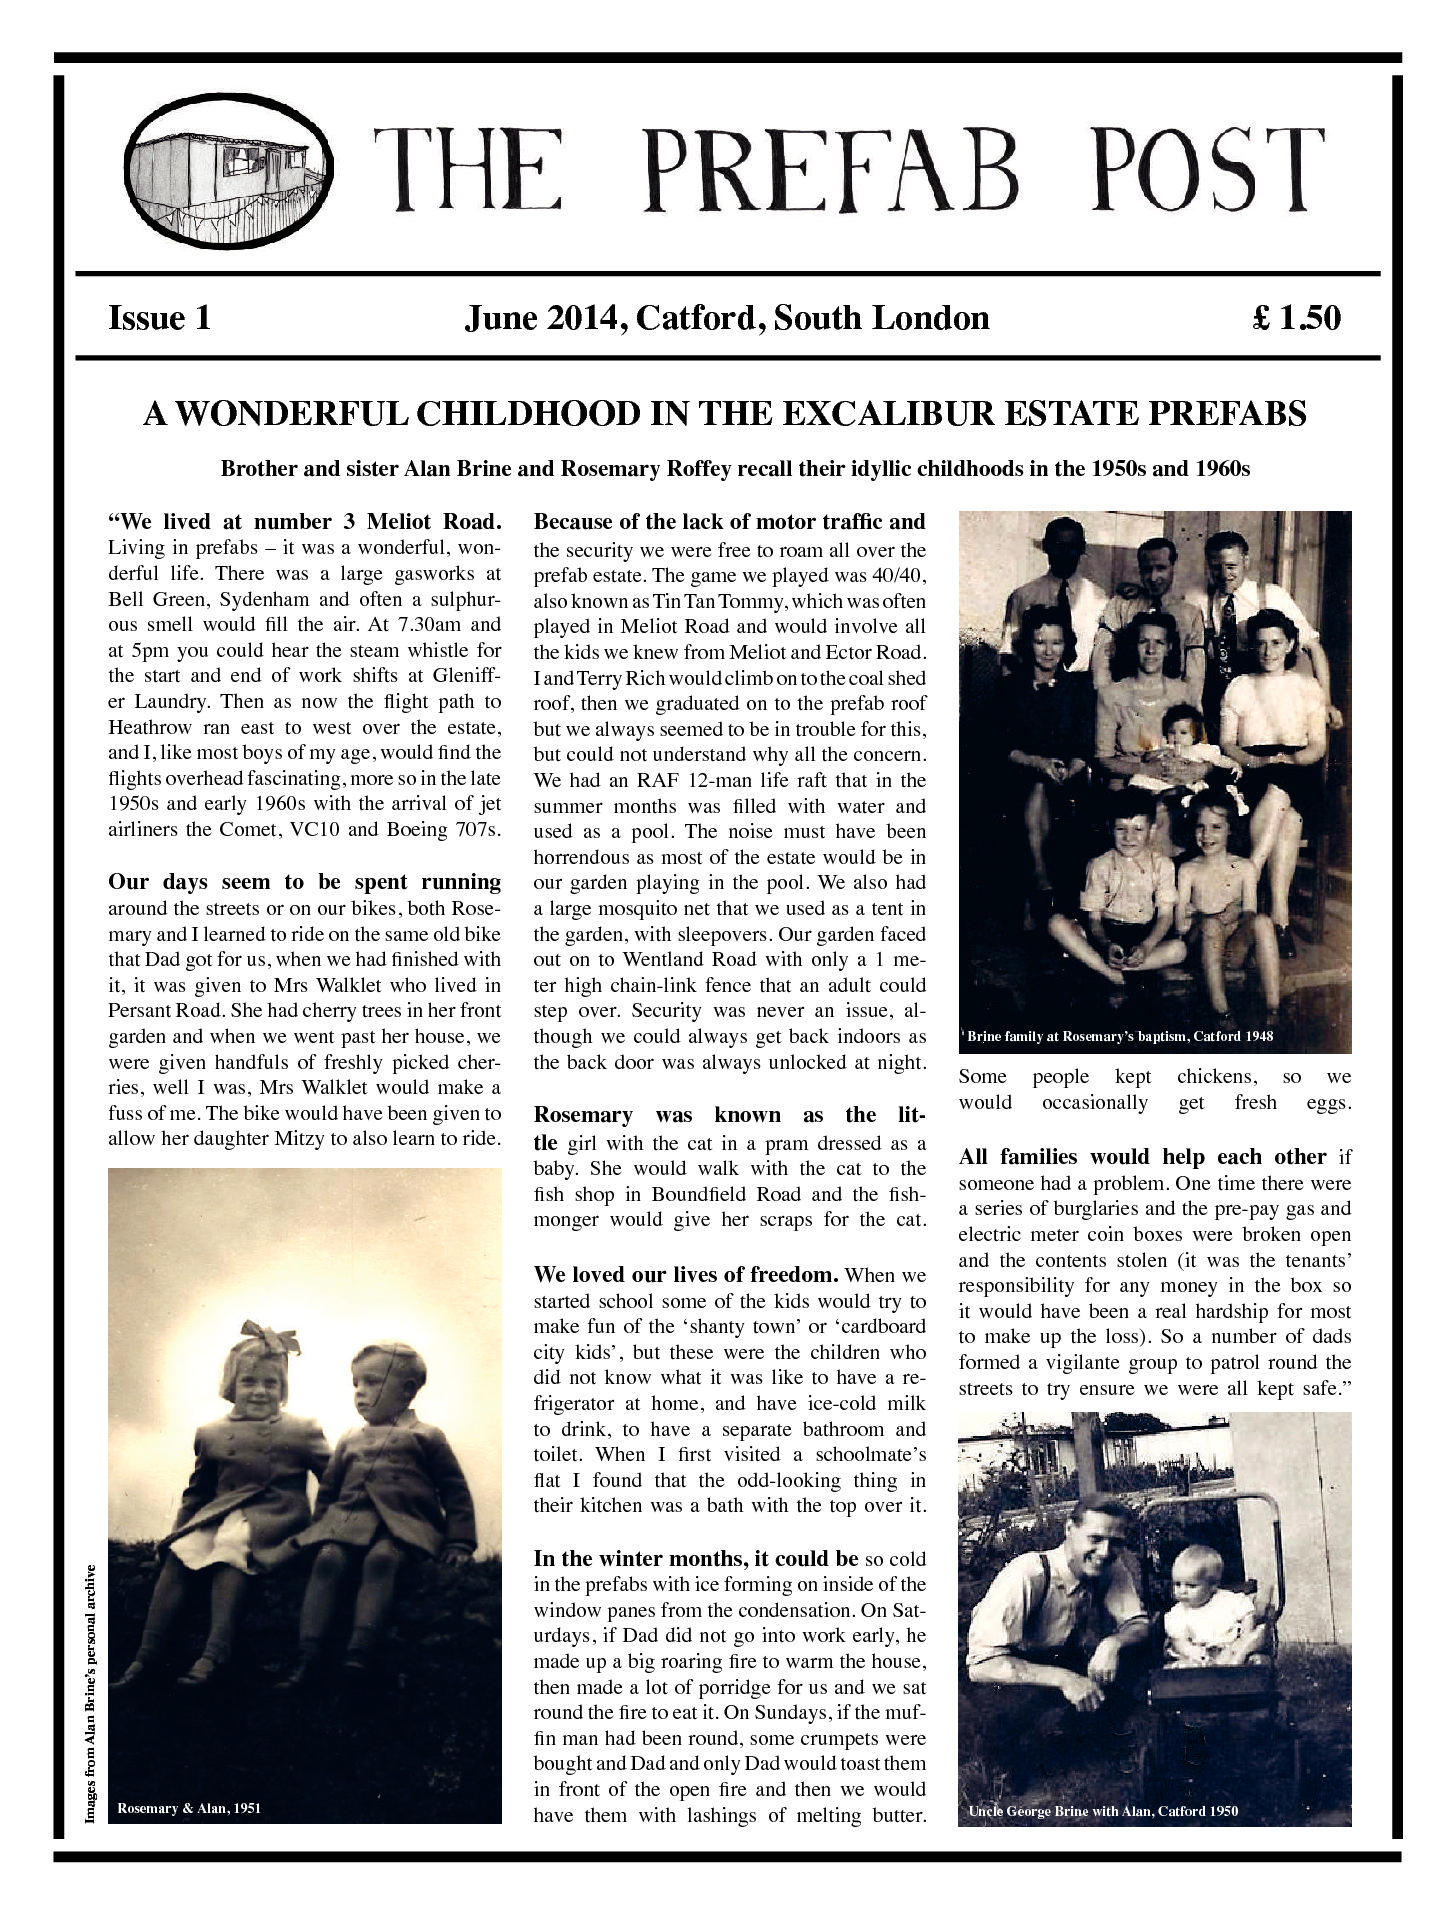 The Prefab Post, Issue 1. June 2014